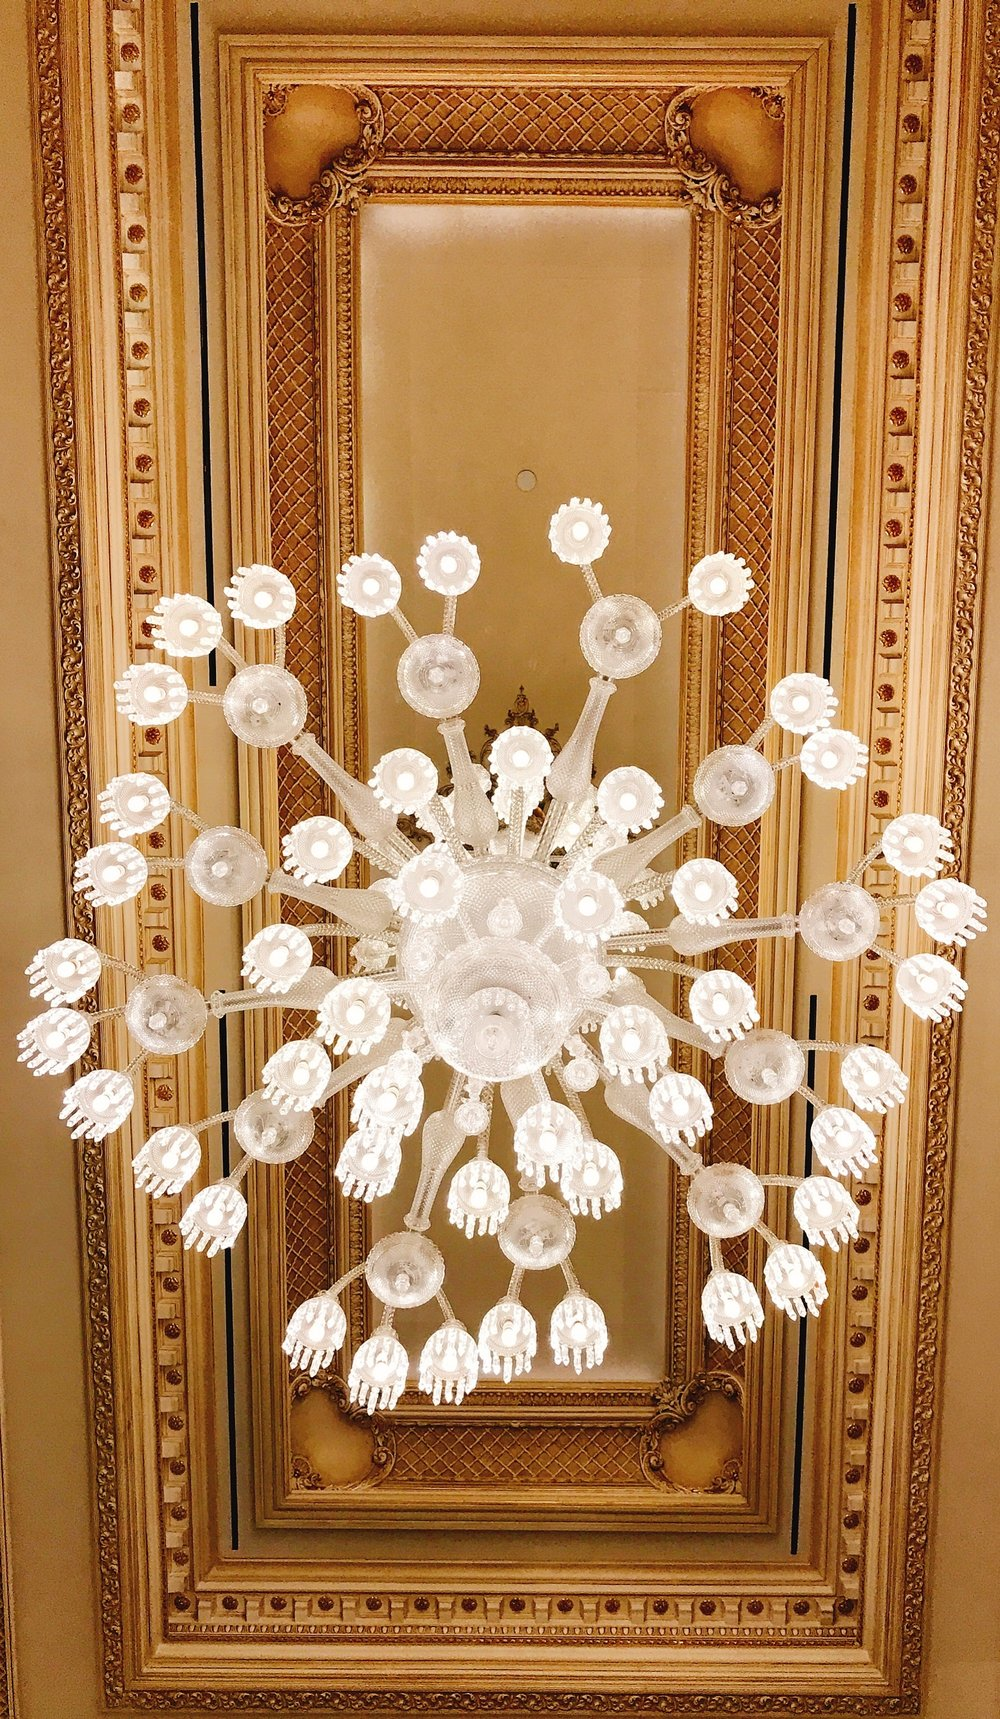 Ceiling and Lighting delights